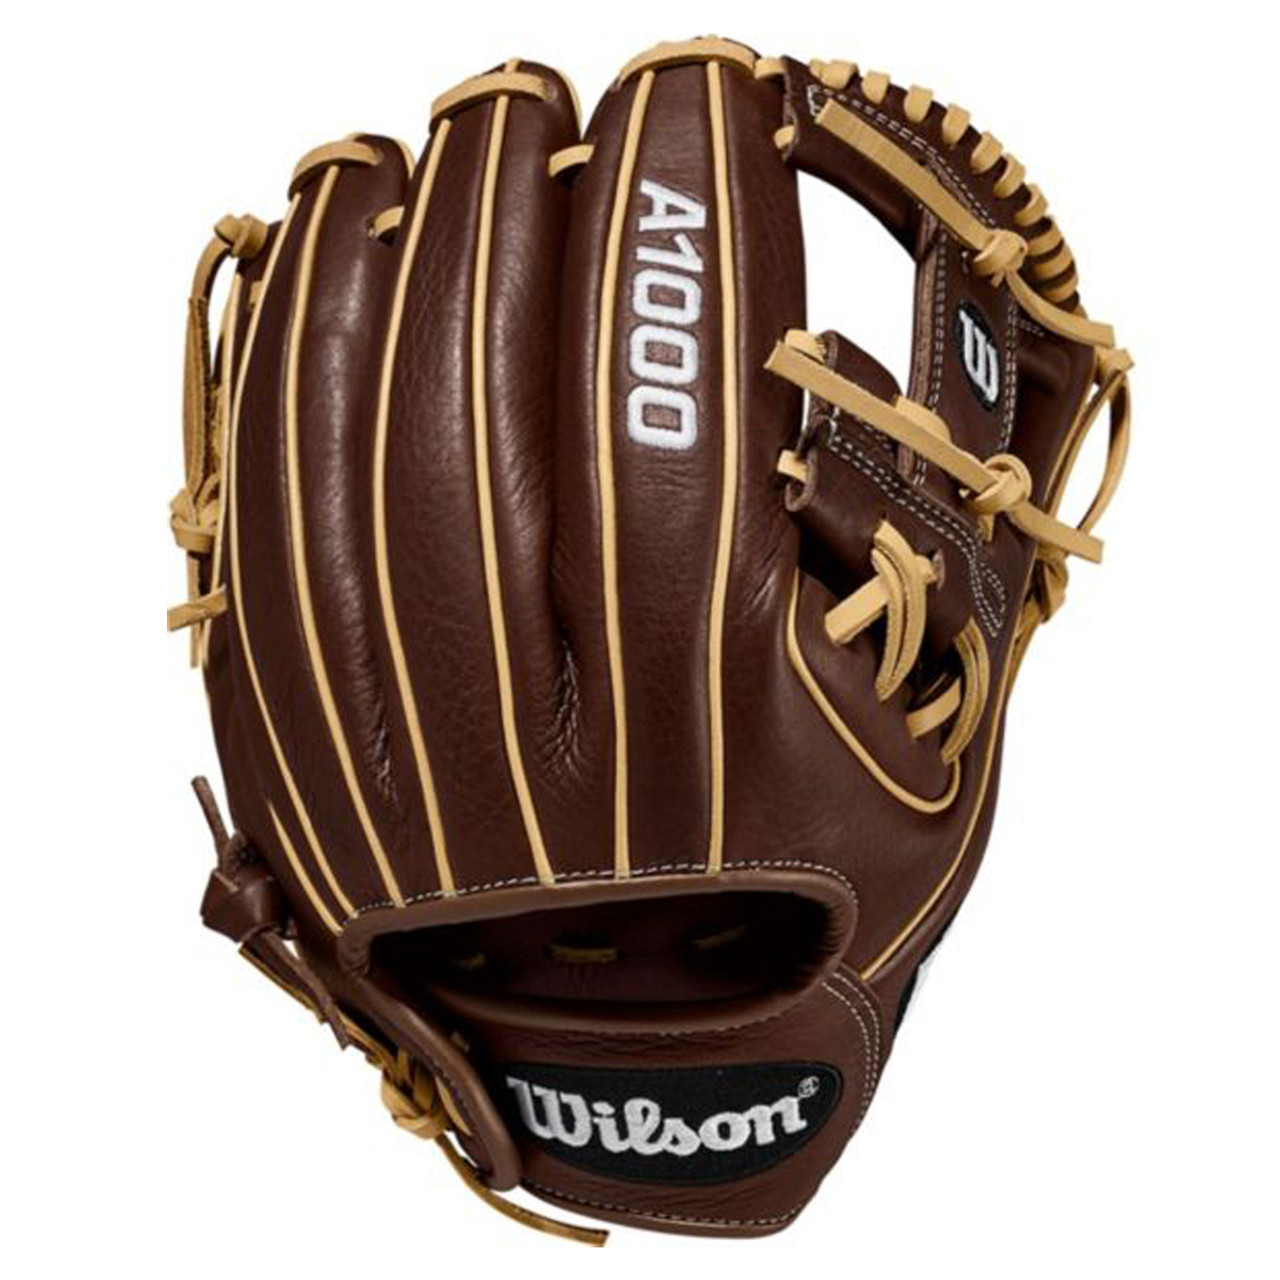 Wilson Adult Leather Baseball Glove A1000 All Positions 11.5 Pro Stock /& Grade